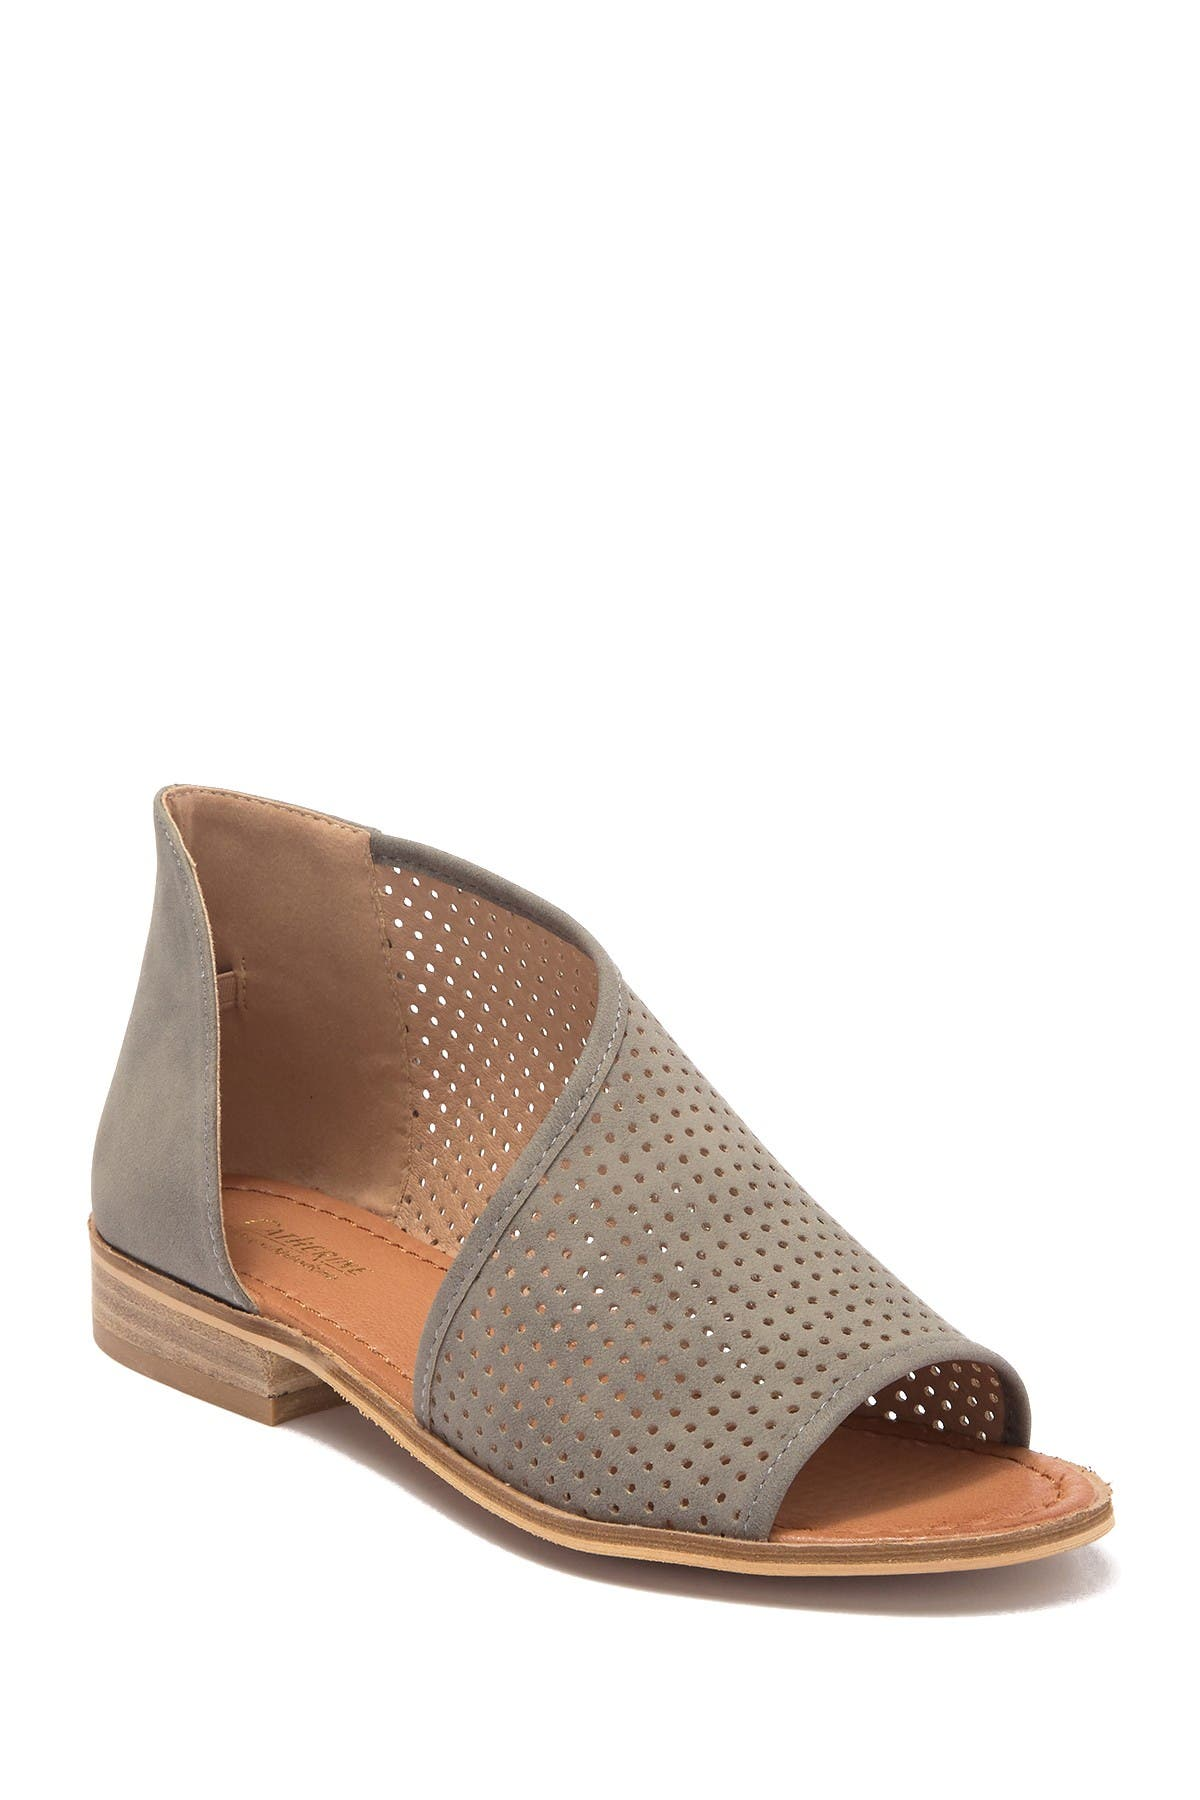 Image of Catherine Catherine Malandrino Replay Perforated d'Orsay Angled Sandal